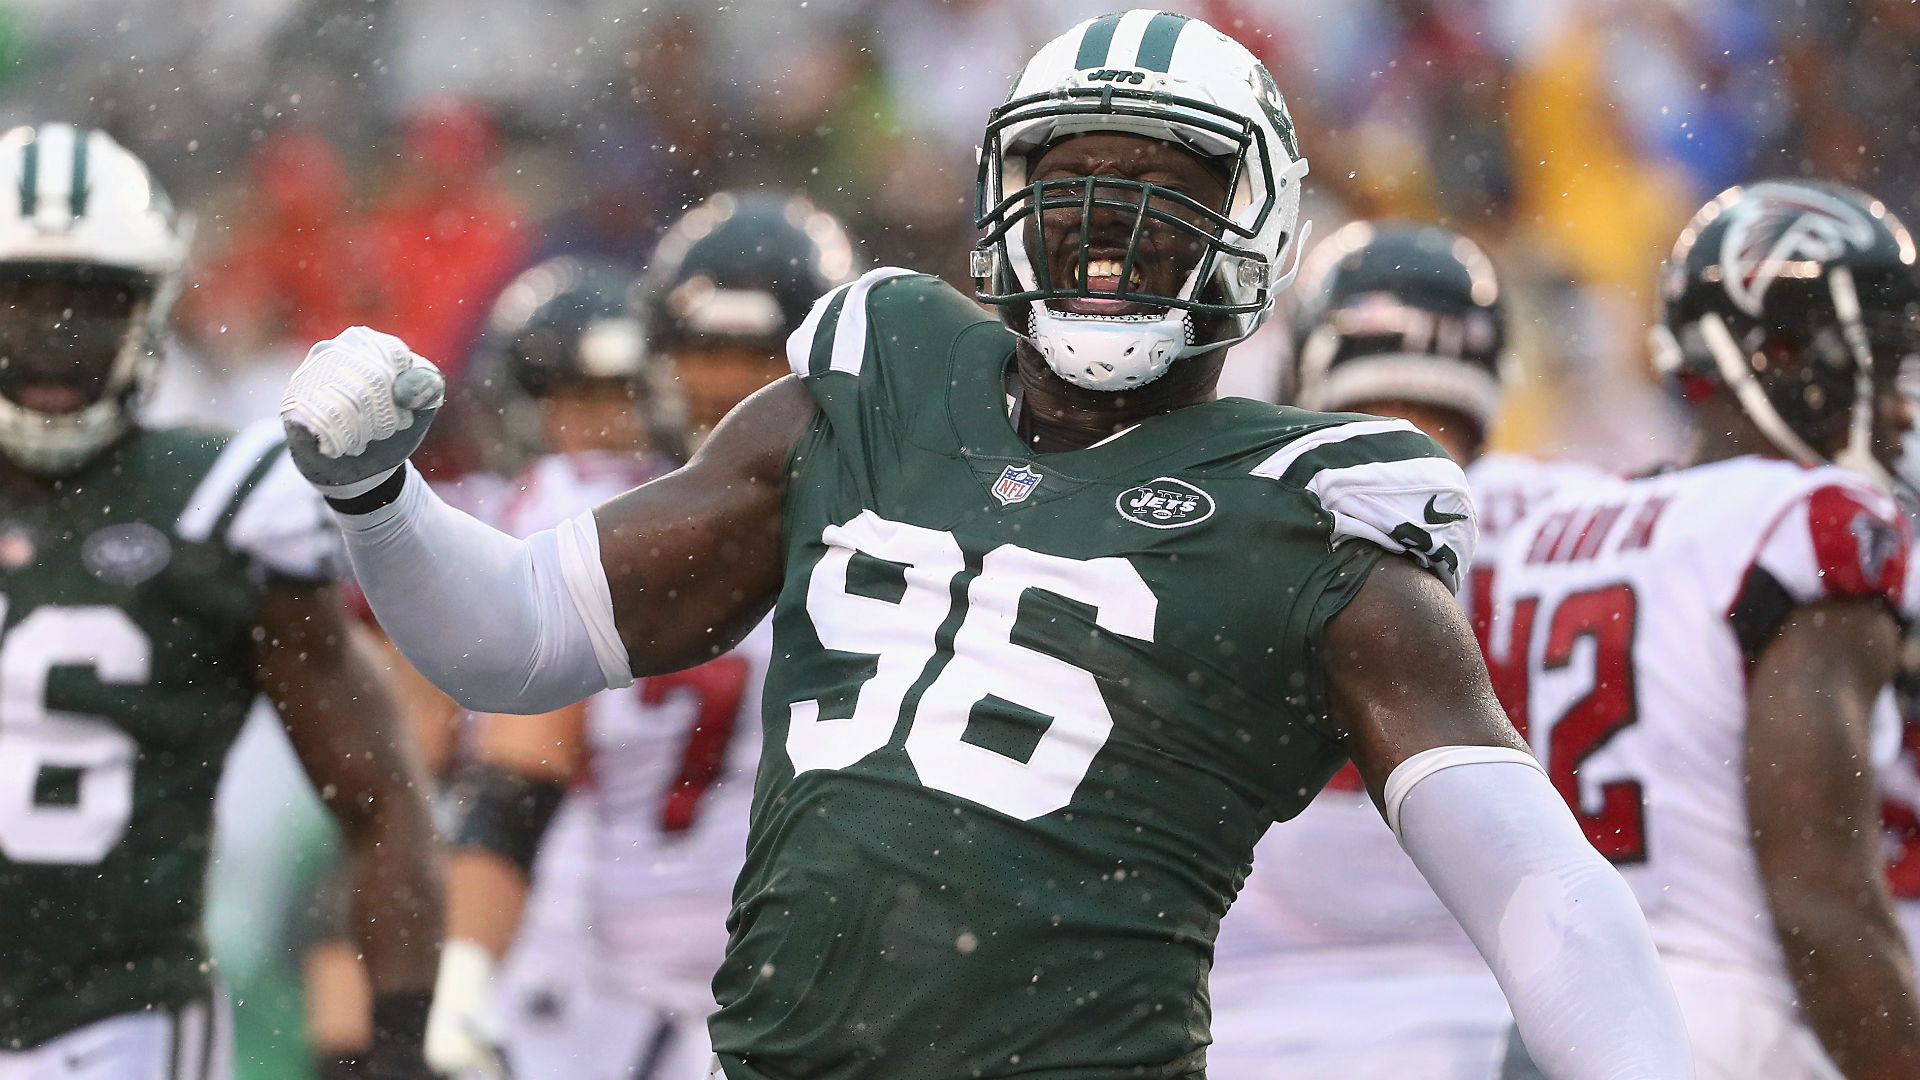 Jets DL Muhammad Wilkerson out Sunday due to 'coach's decision'